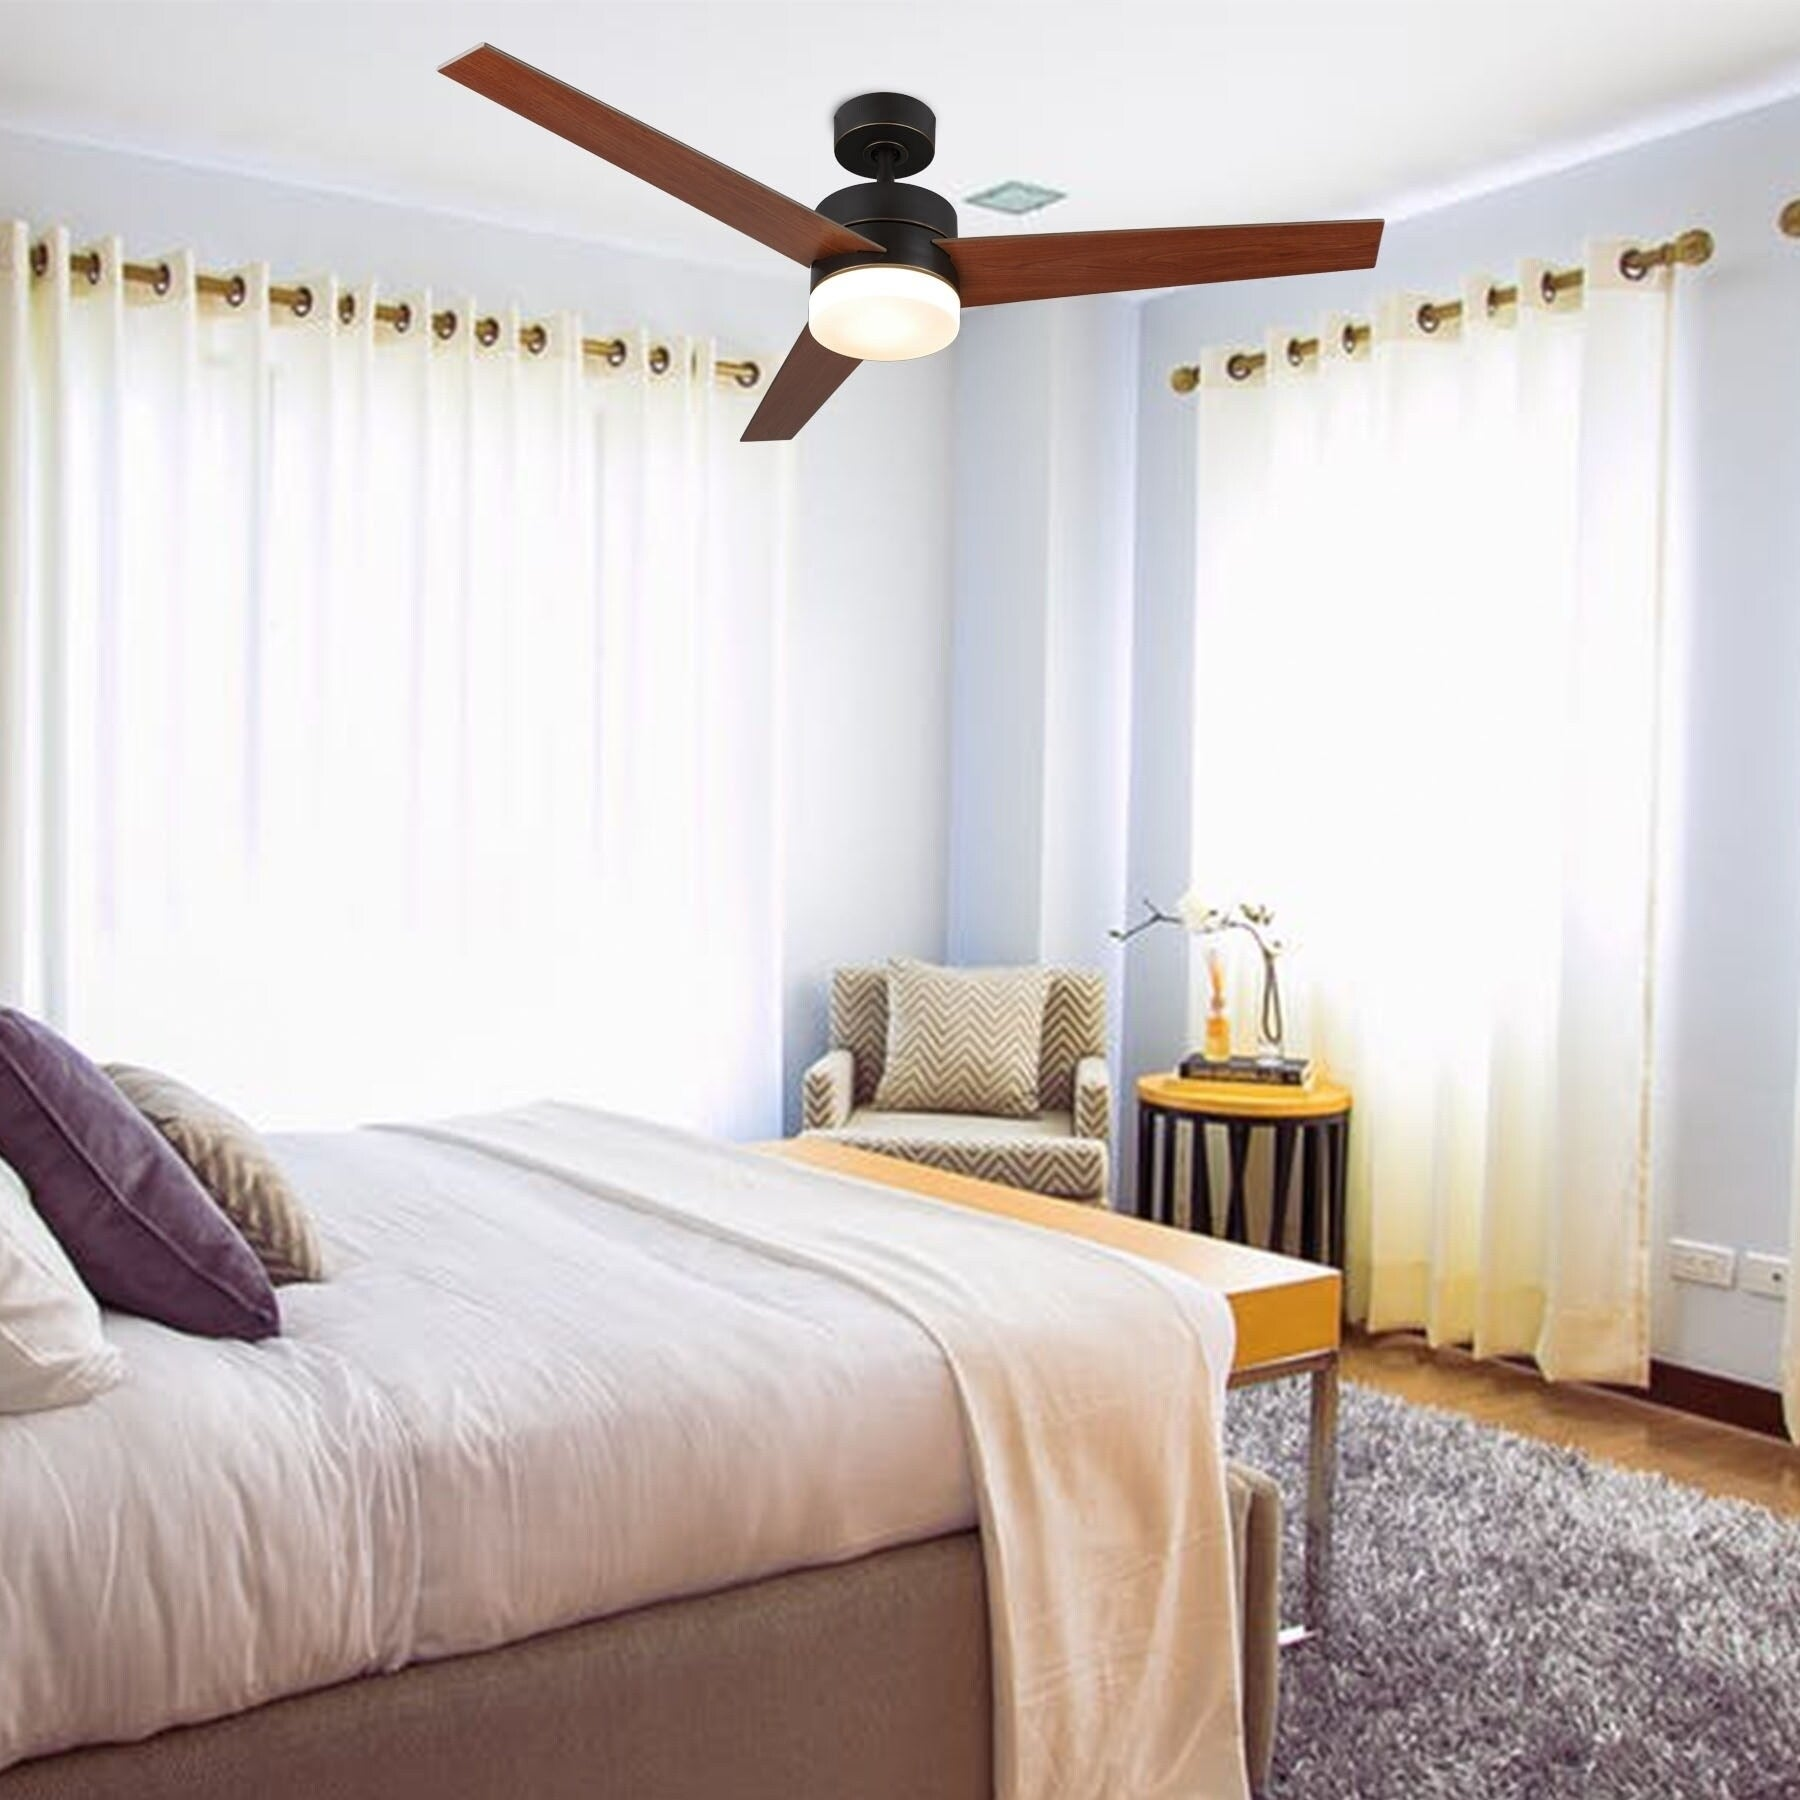 Shop Black Friday Deals On Co Z 52 3 Blade Modern Led Ceiling Fan With Light Kit And Remote Control Overstock 28358399